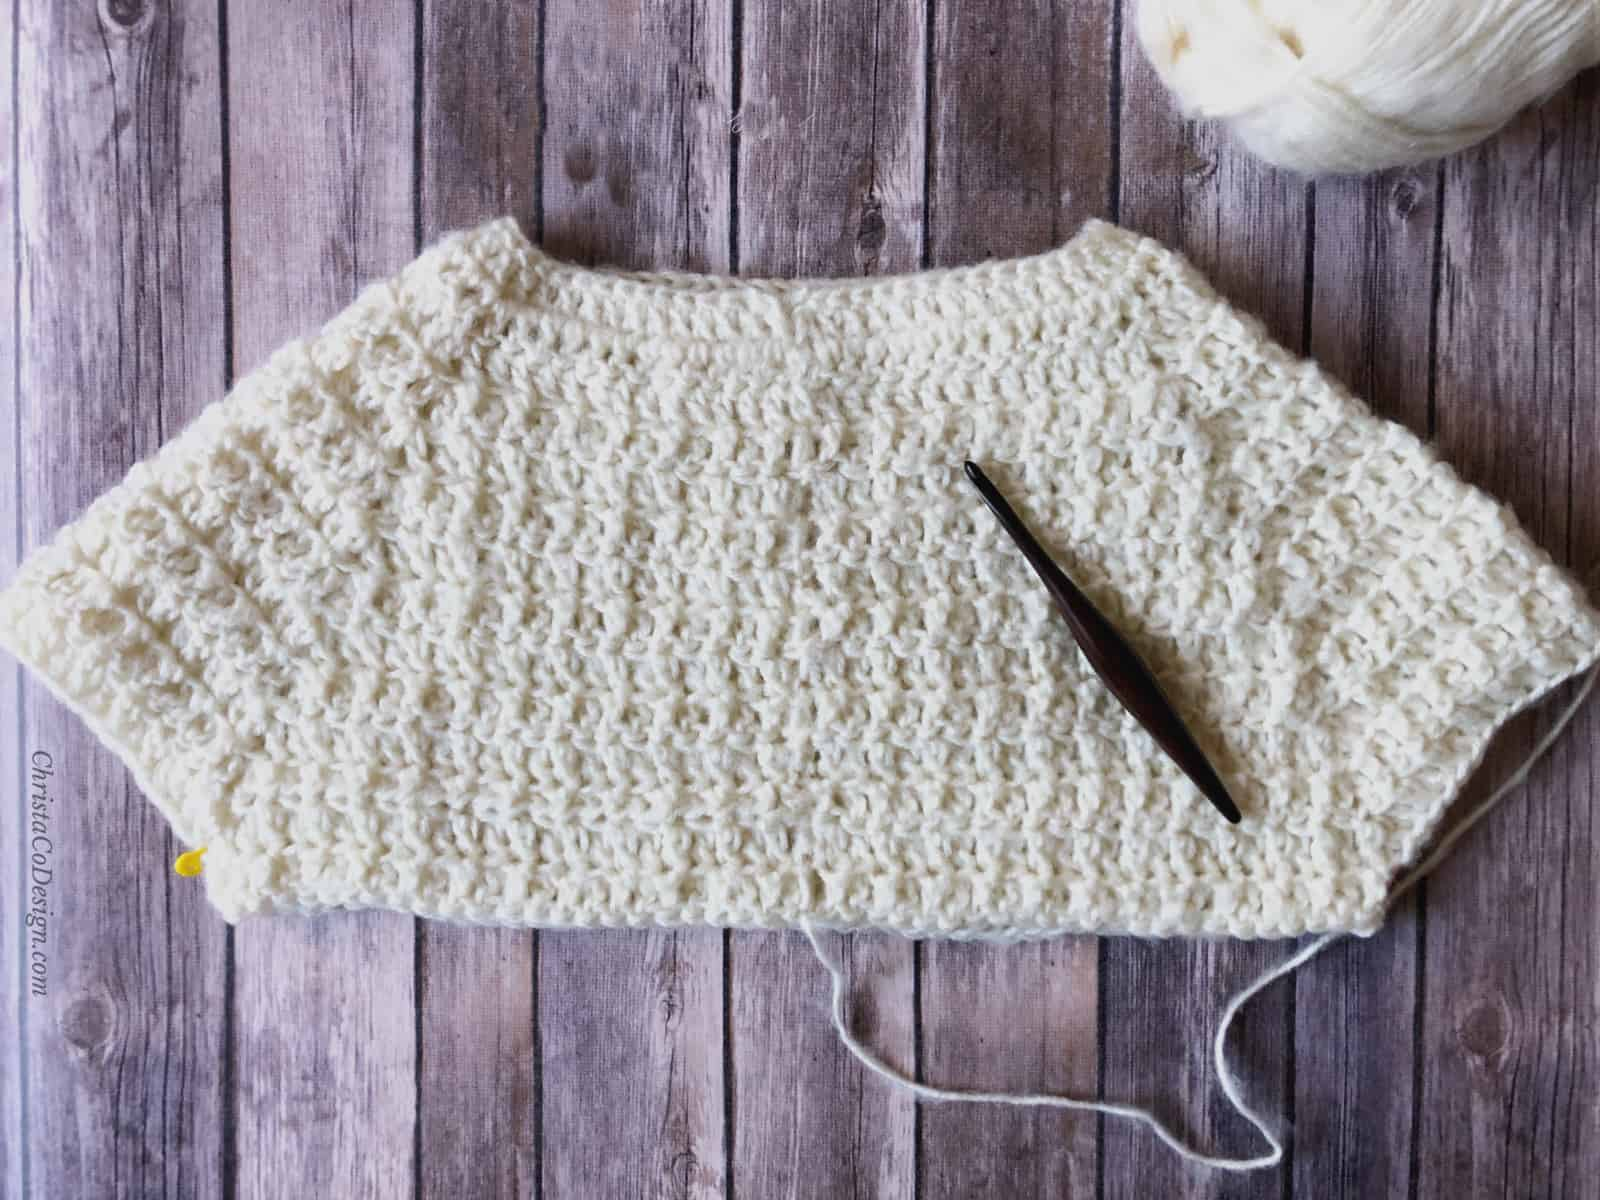 Sweater divided for body and sleeve crochet pattern free.